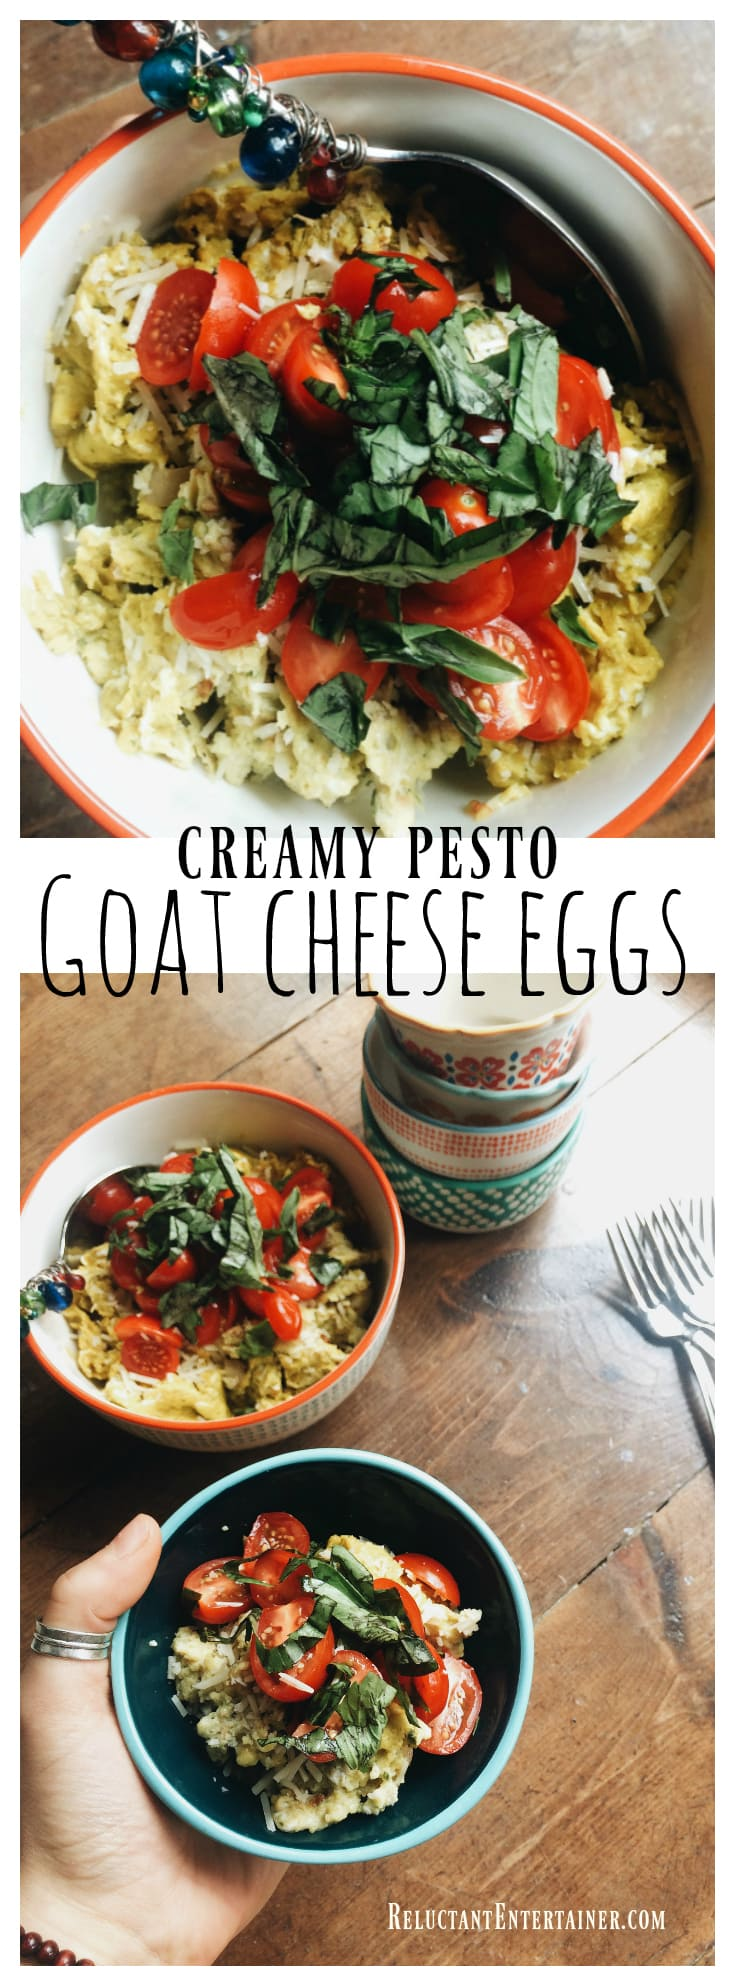 Creamy Pesto Goat Cheese Eggs are a delicious dish to serve with fresh tomatoes and basil, perfect for a weekend breakfast or brunch!